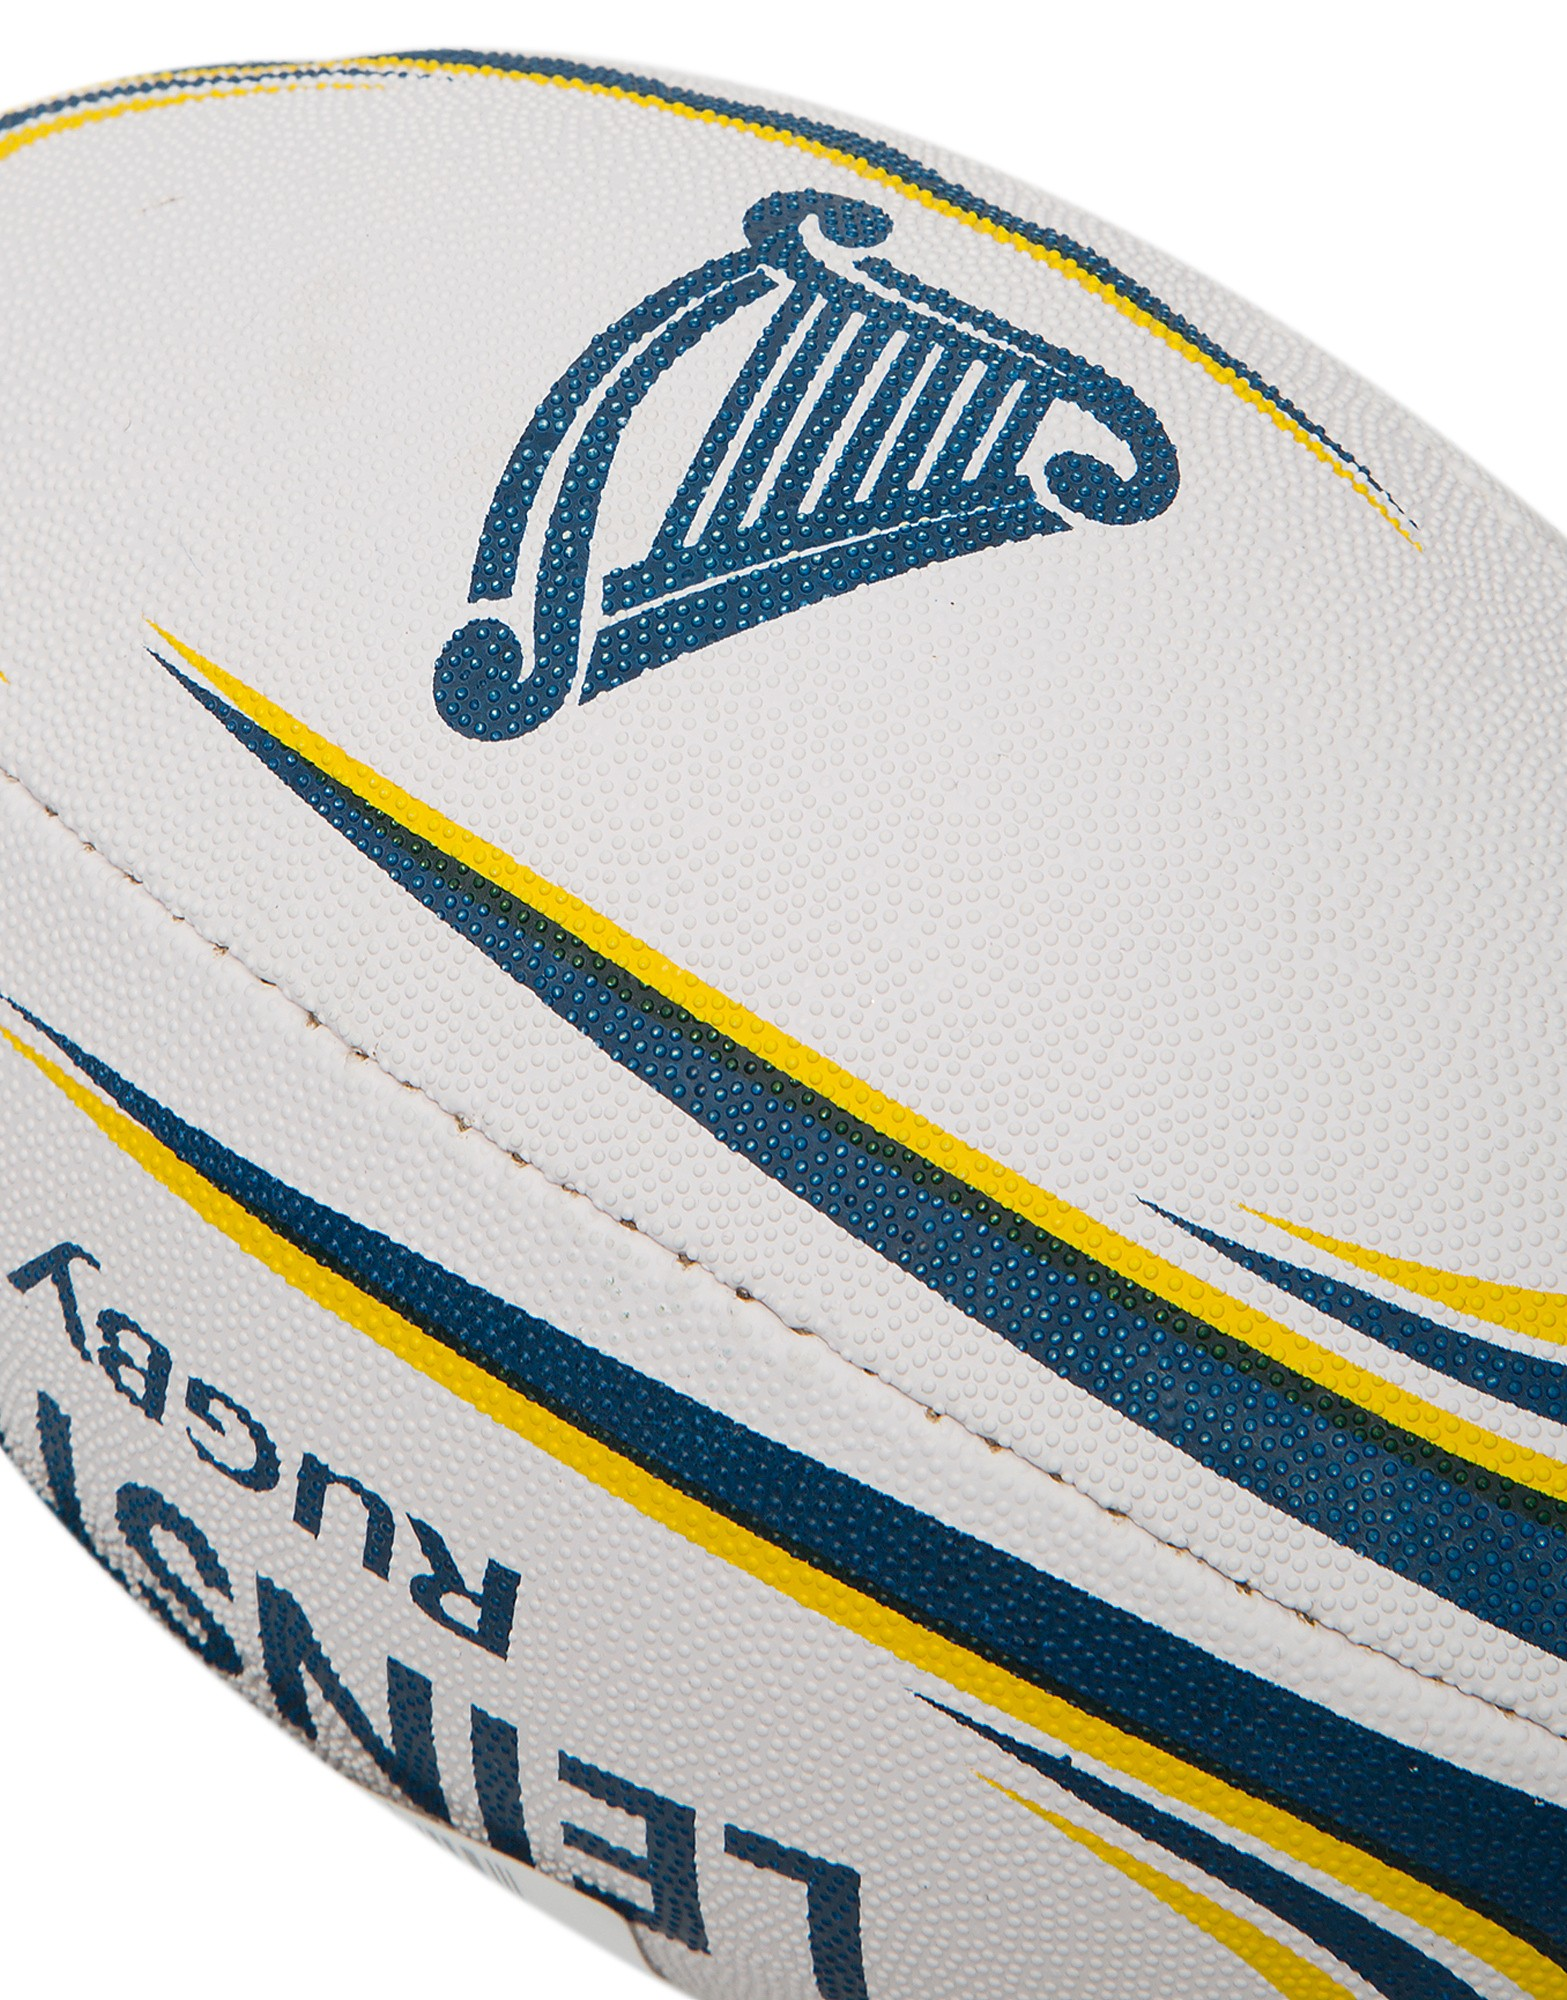 Daricia Leinster Mini Rugby Ball